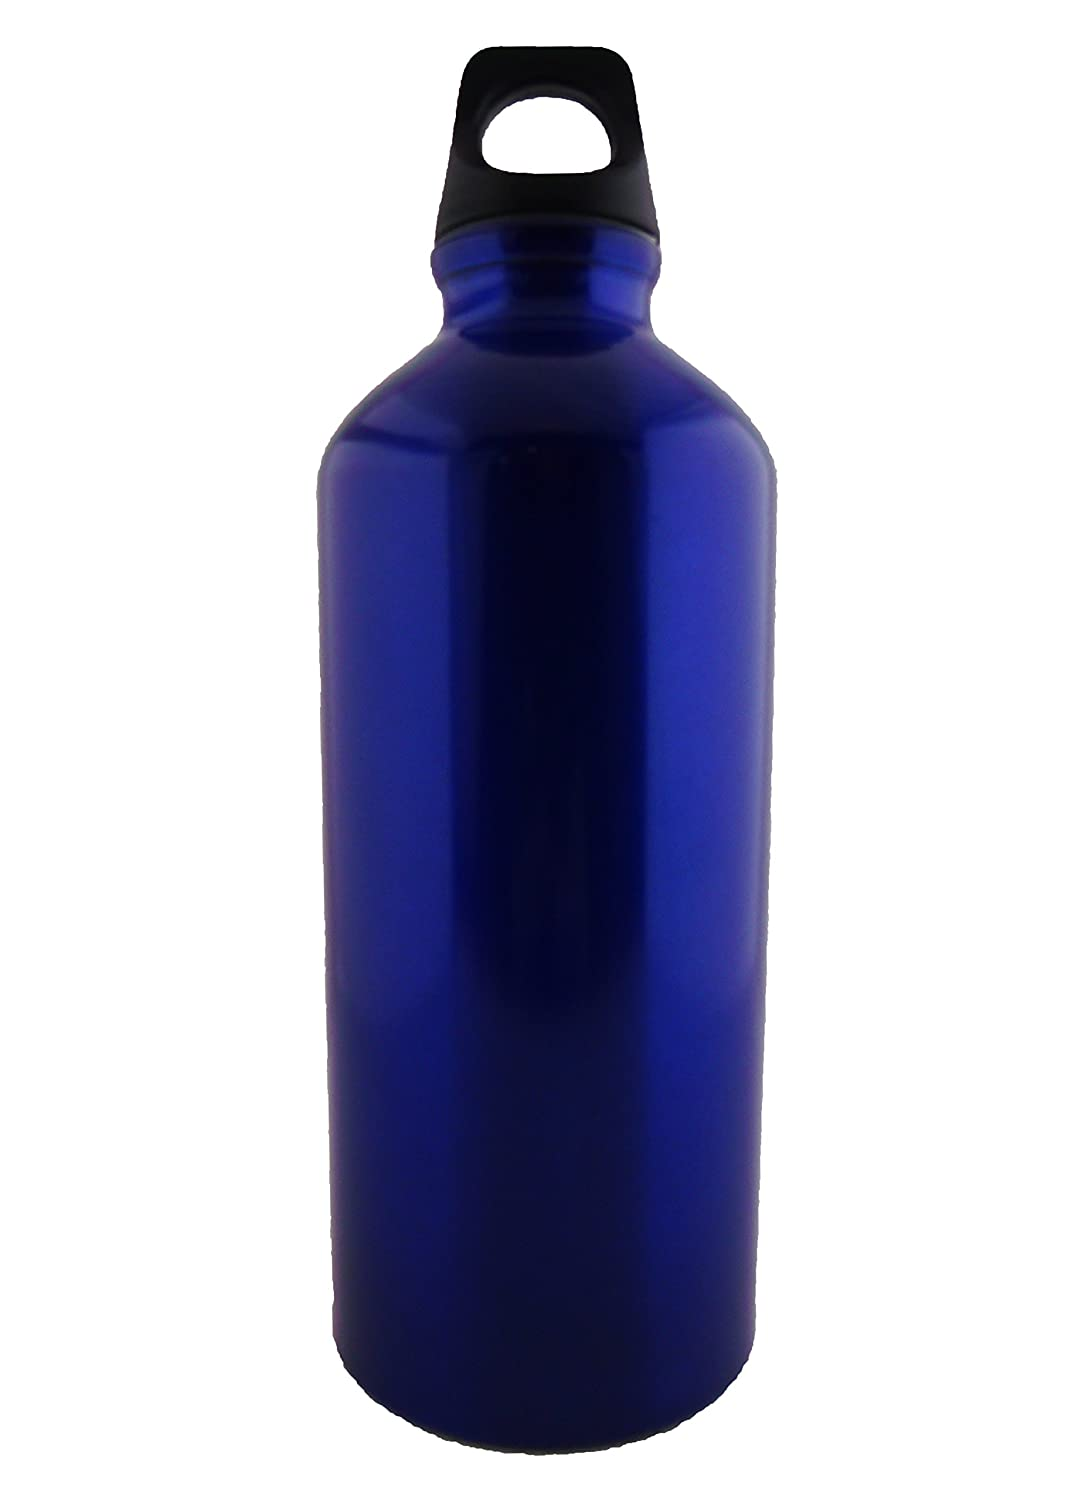 Midnight Blue 20oz Kitchsmart Aluminum Water Bottle with Plastic Screw Lid Looped on the Top